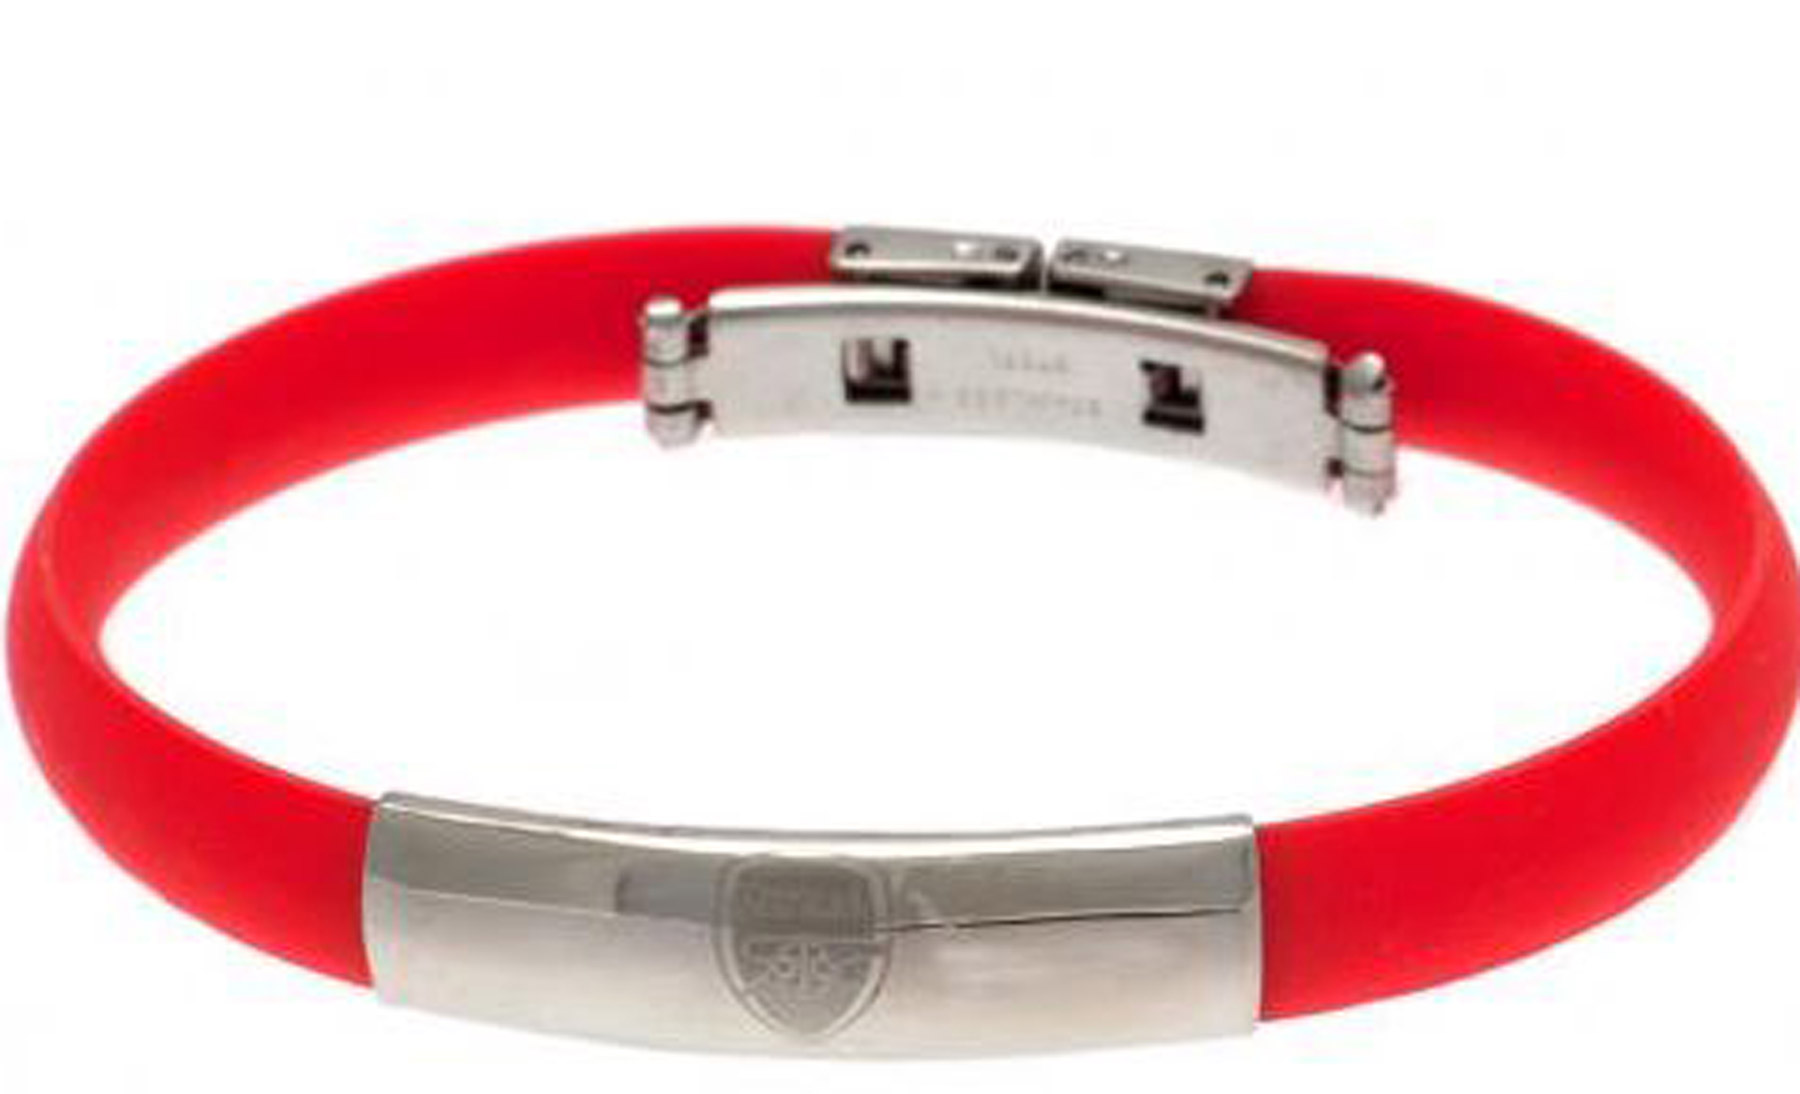 Arsenal Crest Rubber Band Bracelet - Stainless Steel, N/A